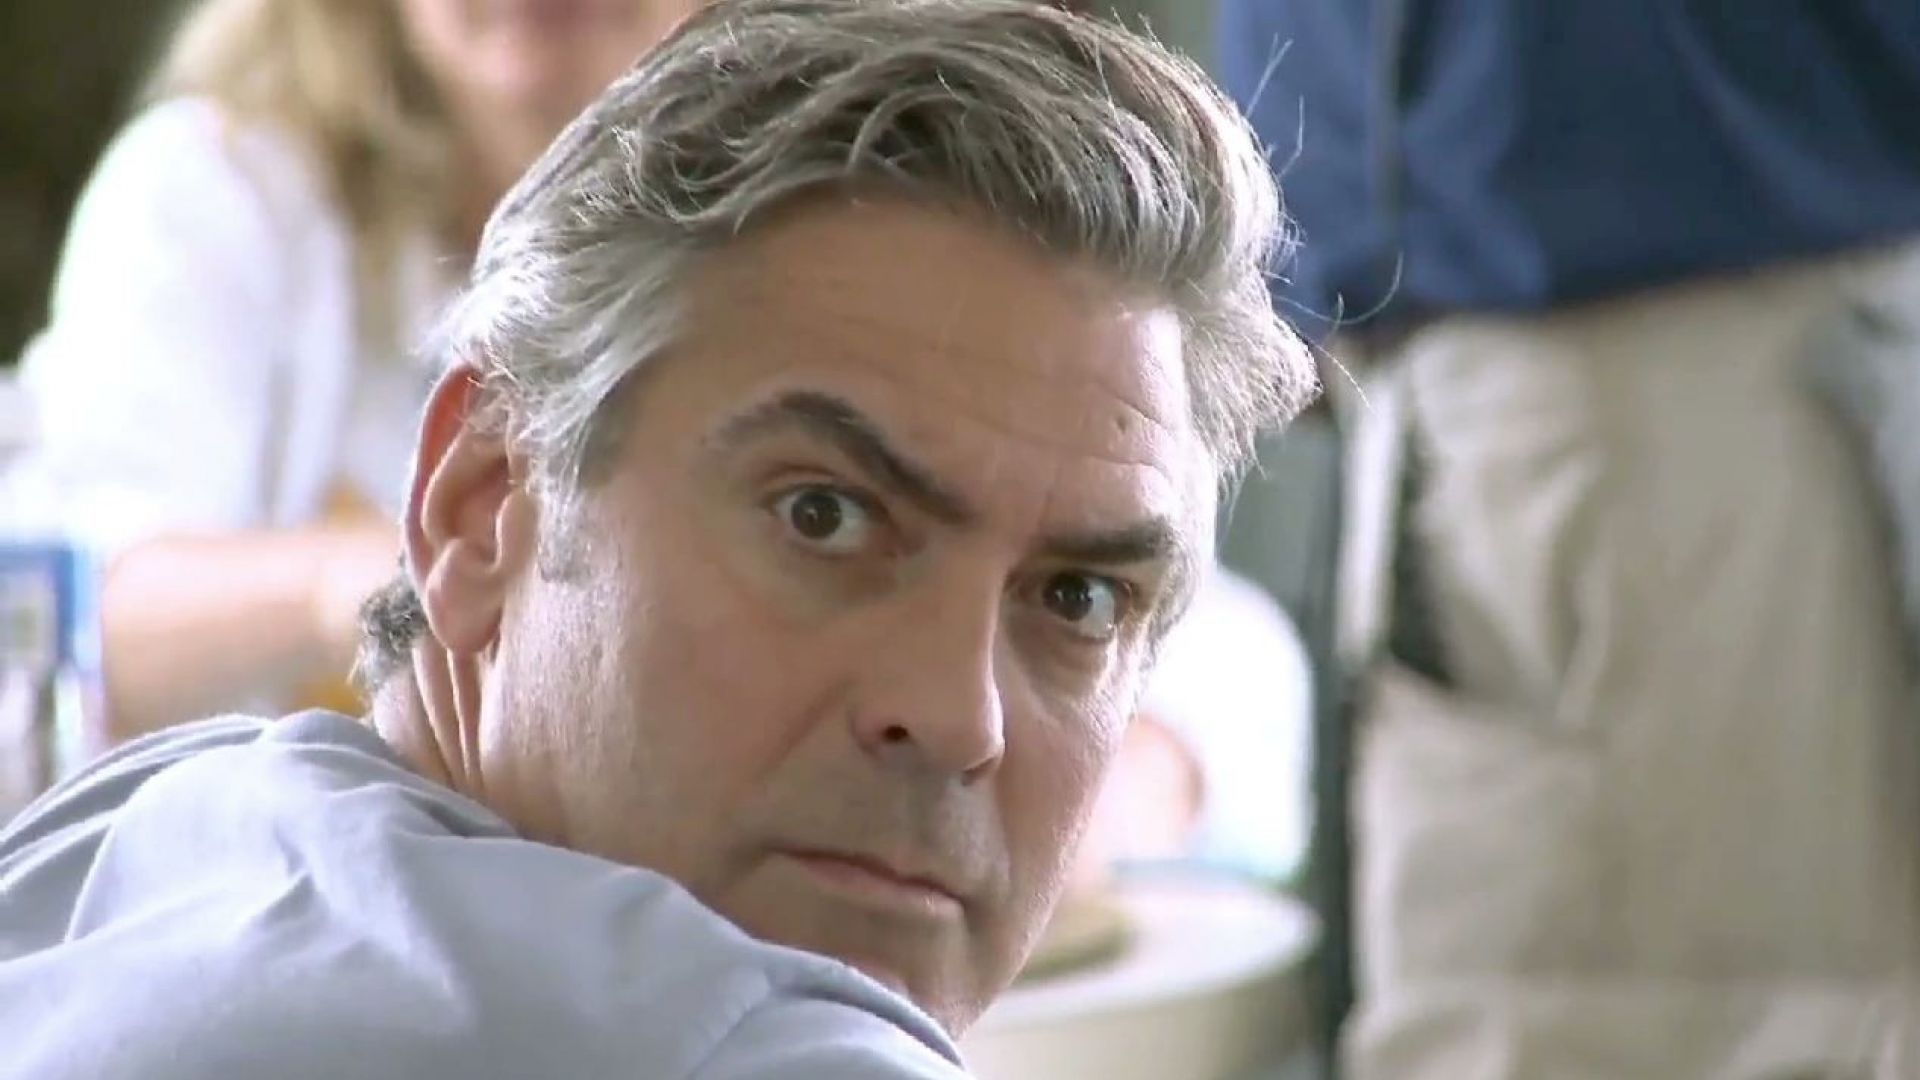 Alexander Payne talks about casting for The Descendants